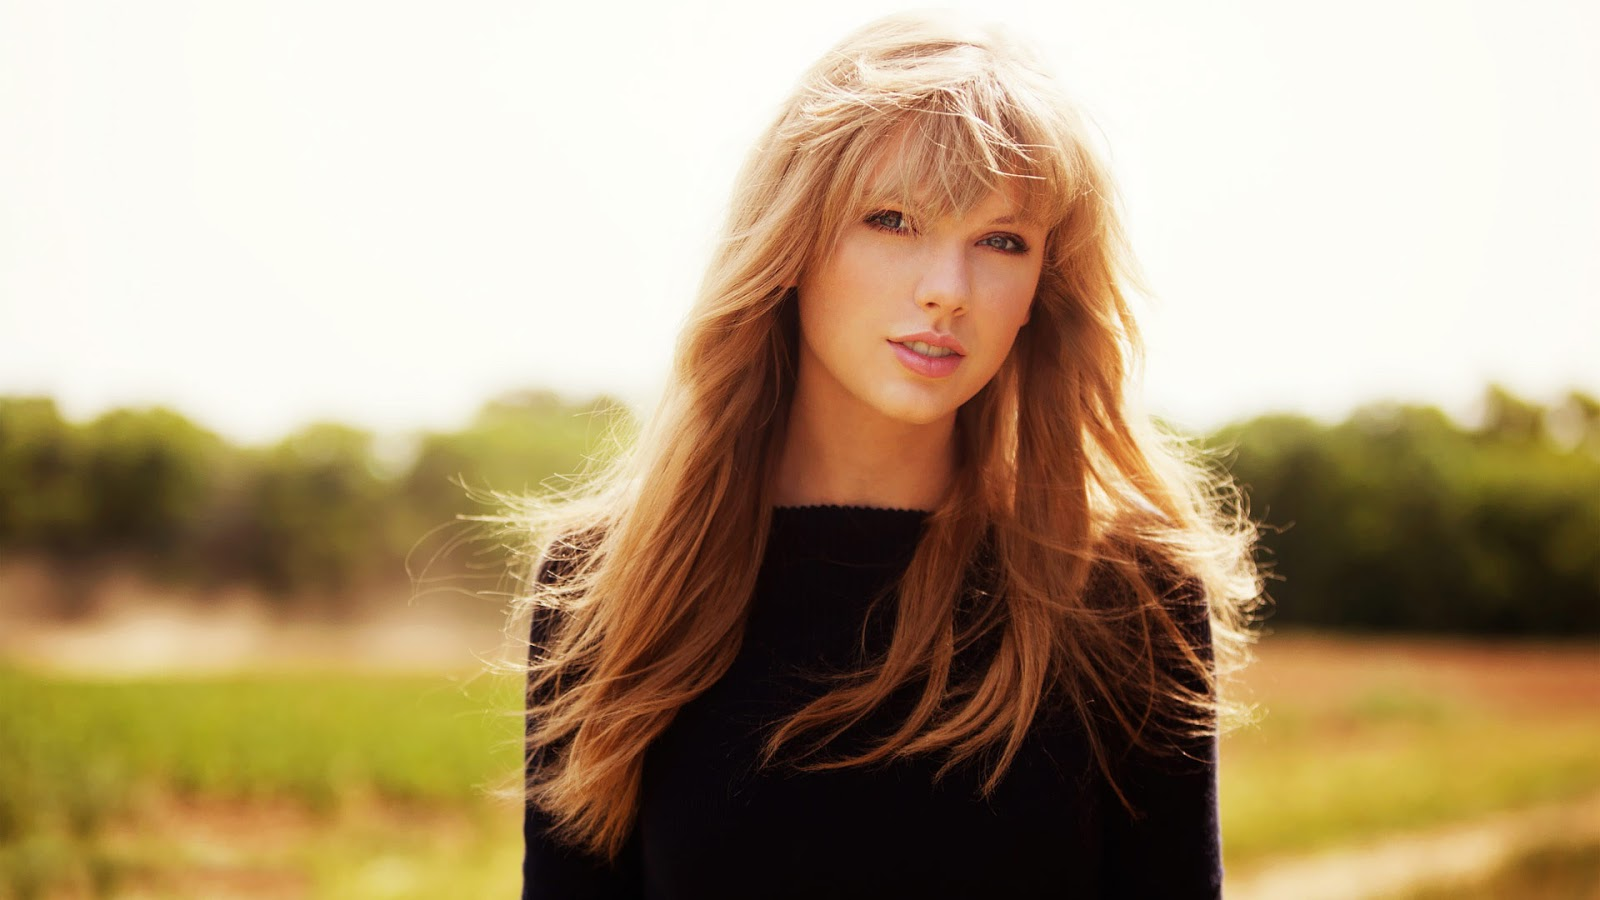 inappropriate celebrity wallpapers taylor swift - photo #30